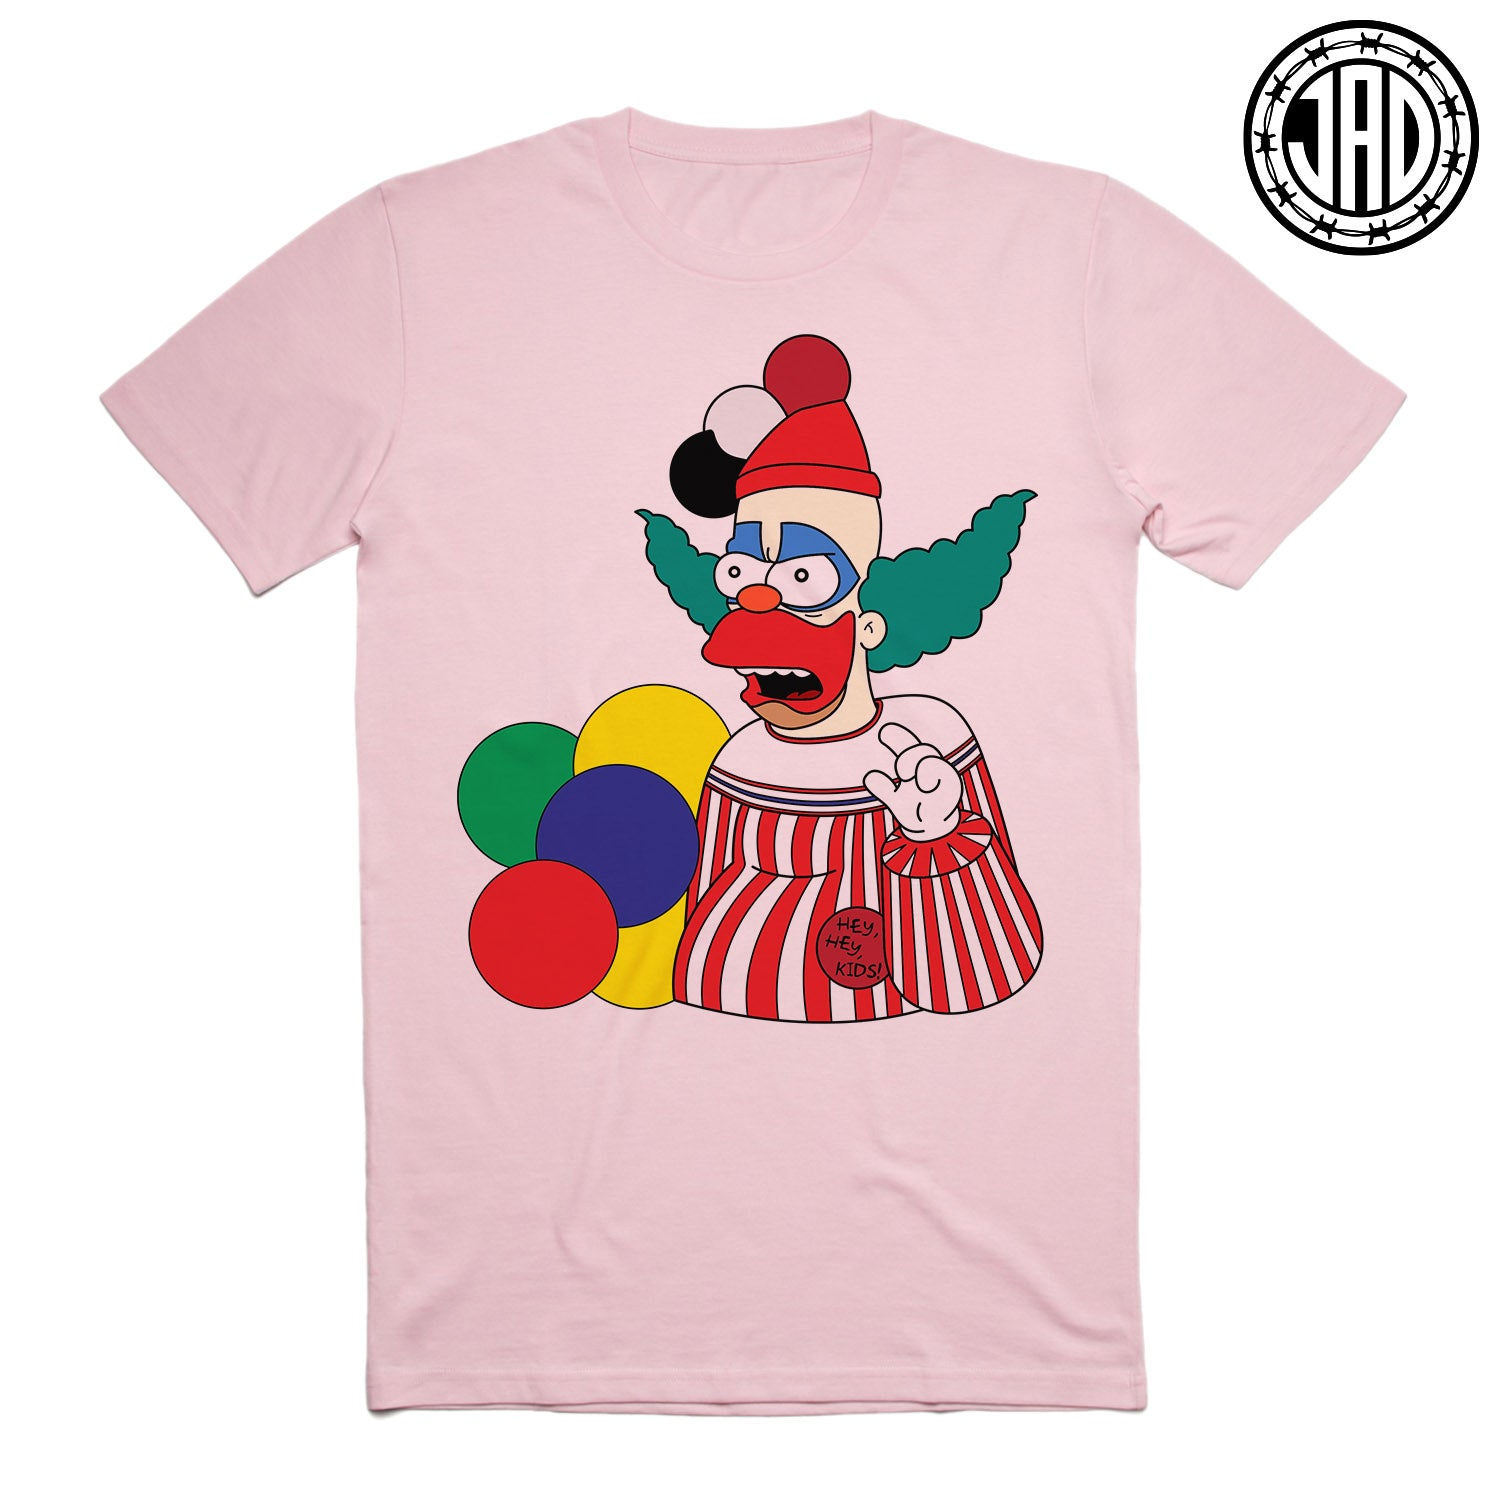 Pogo Cartoon - Men's (Unisex) Tee